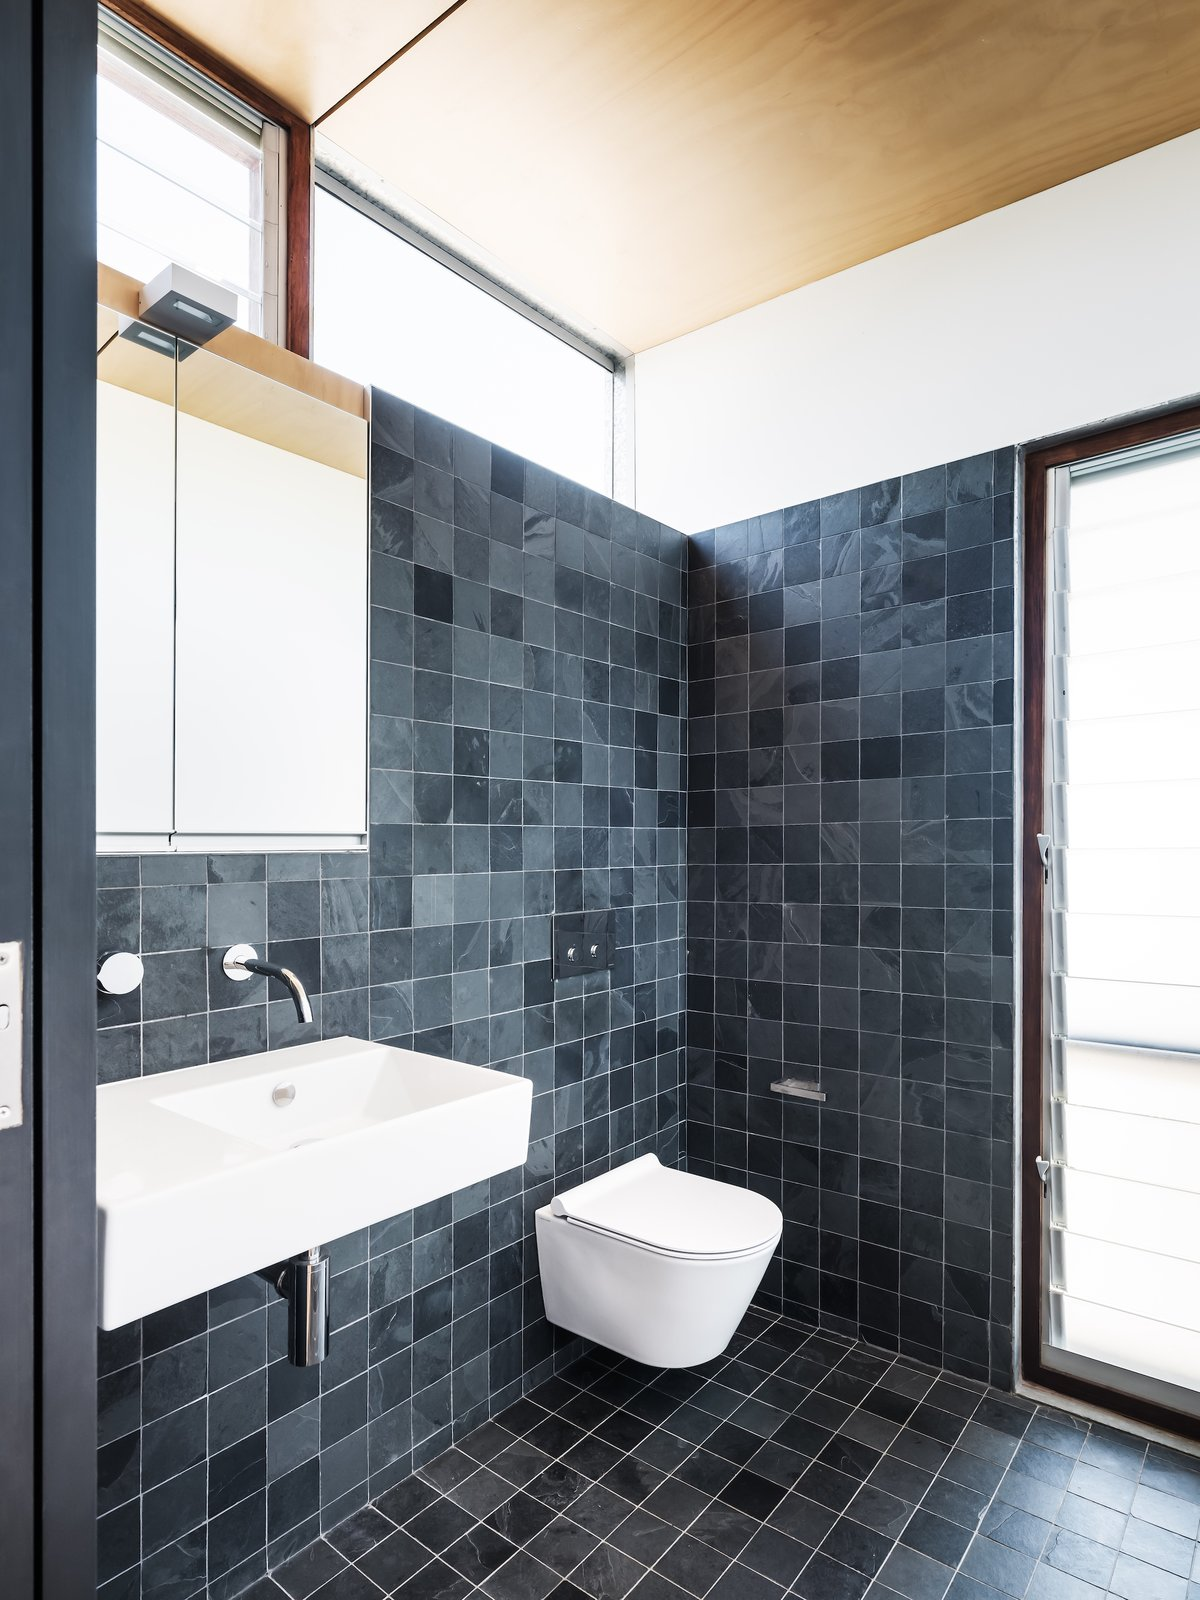 Bathroom of Courtyard House by COX.